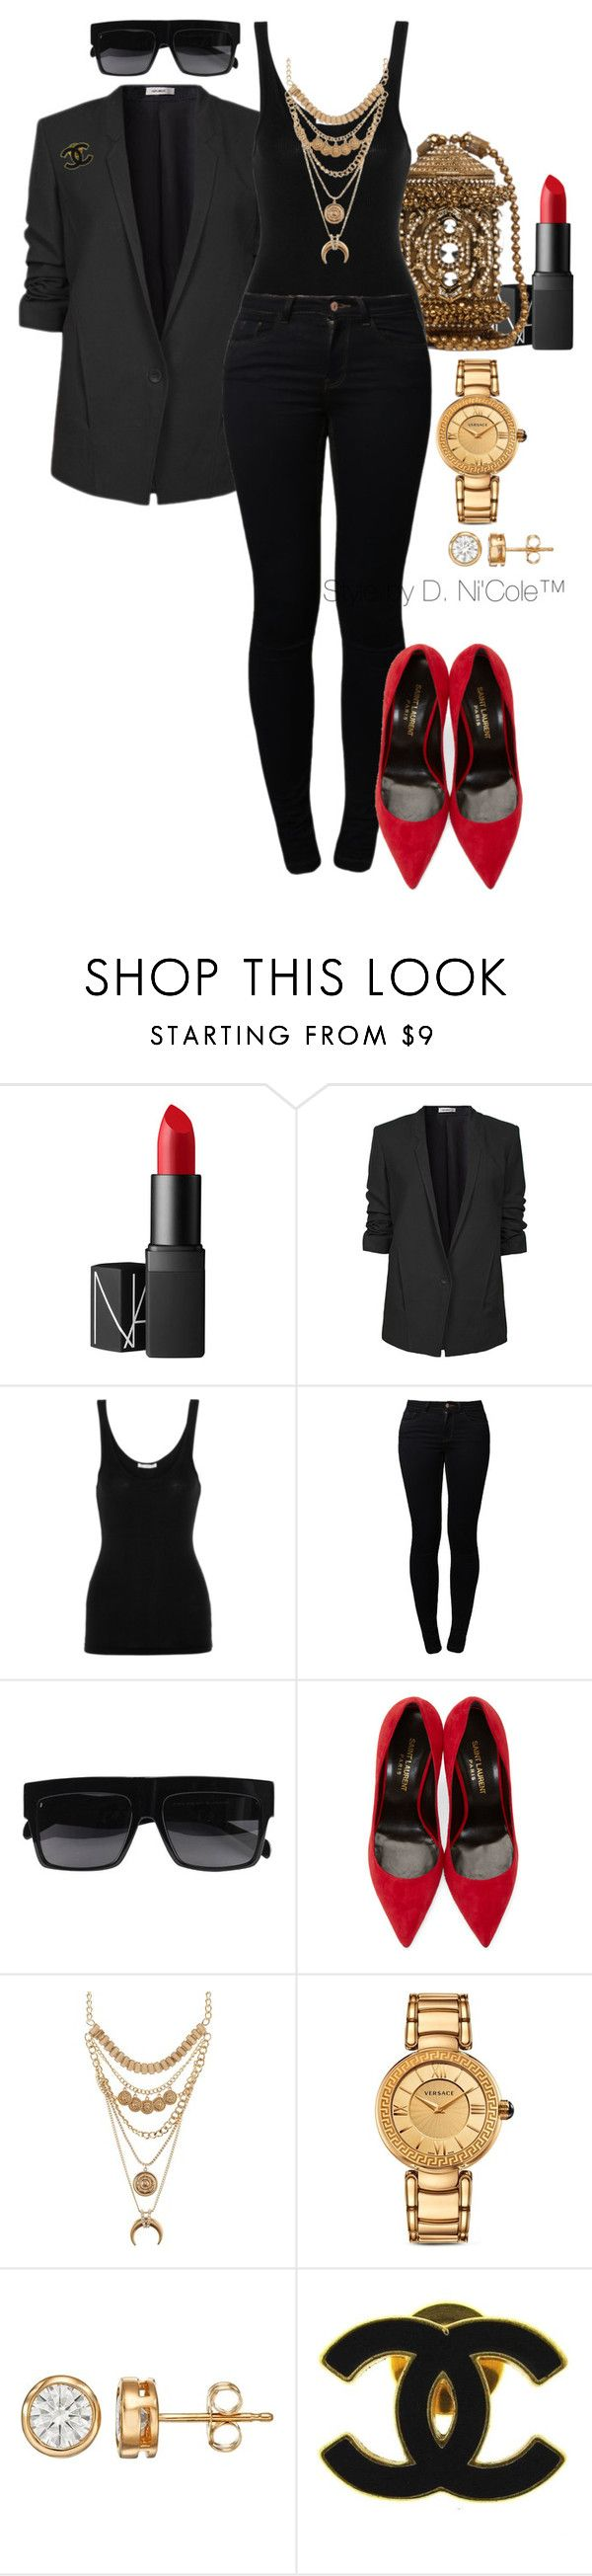 """""""Untitled #3238"""" by stylebydnicole ❤ liked on Polyvore featuring NARS Cosmetics, Helmut Lang, James Perse, Noisy May, Yves Saint Laurent, Charlotte Russe, Versace and Chanel"""